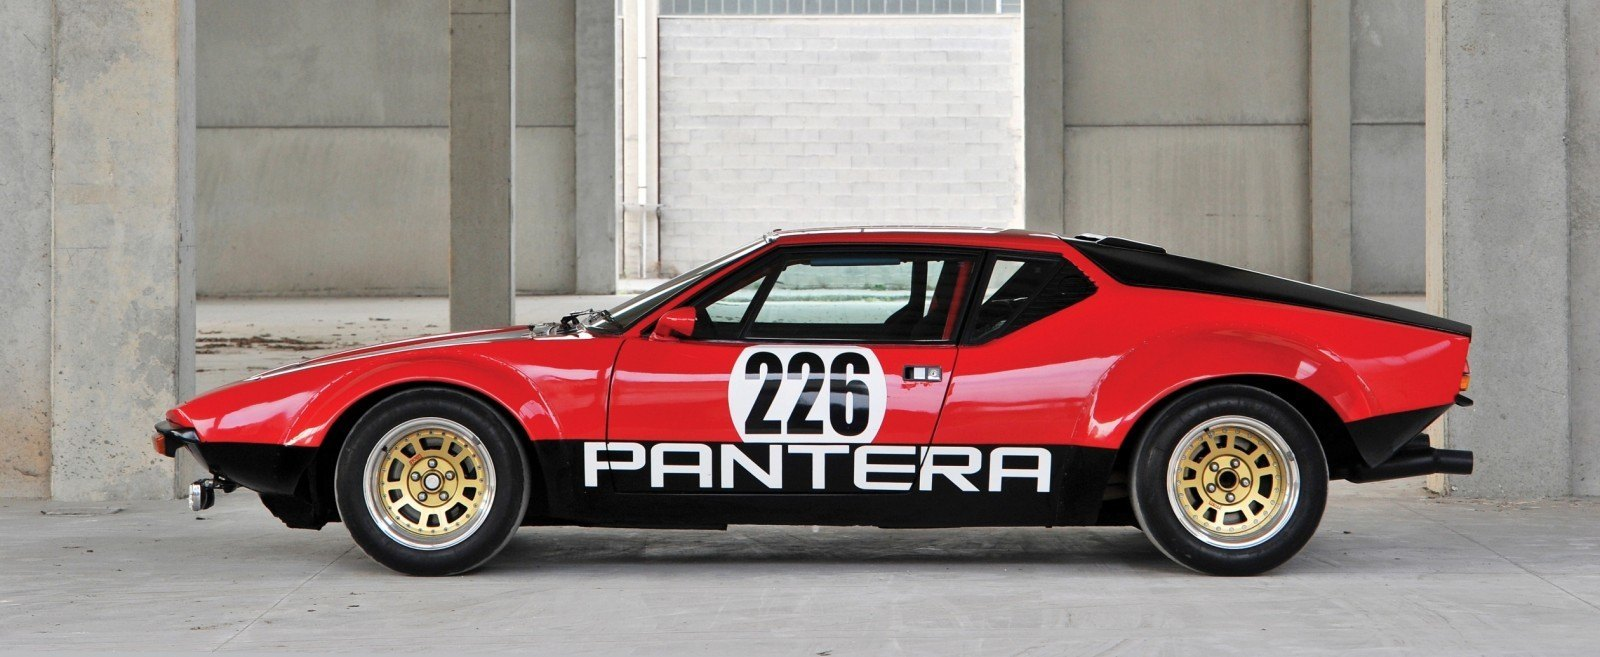 RM Auctions Monaco 2014 Highlights - 1973 DeTomaso Pantera Rally Special Is Low-Brow Heaven 5